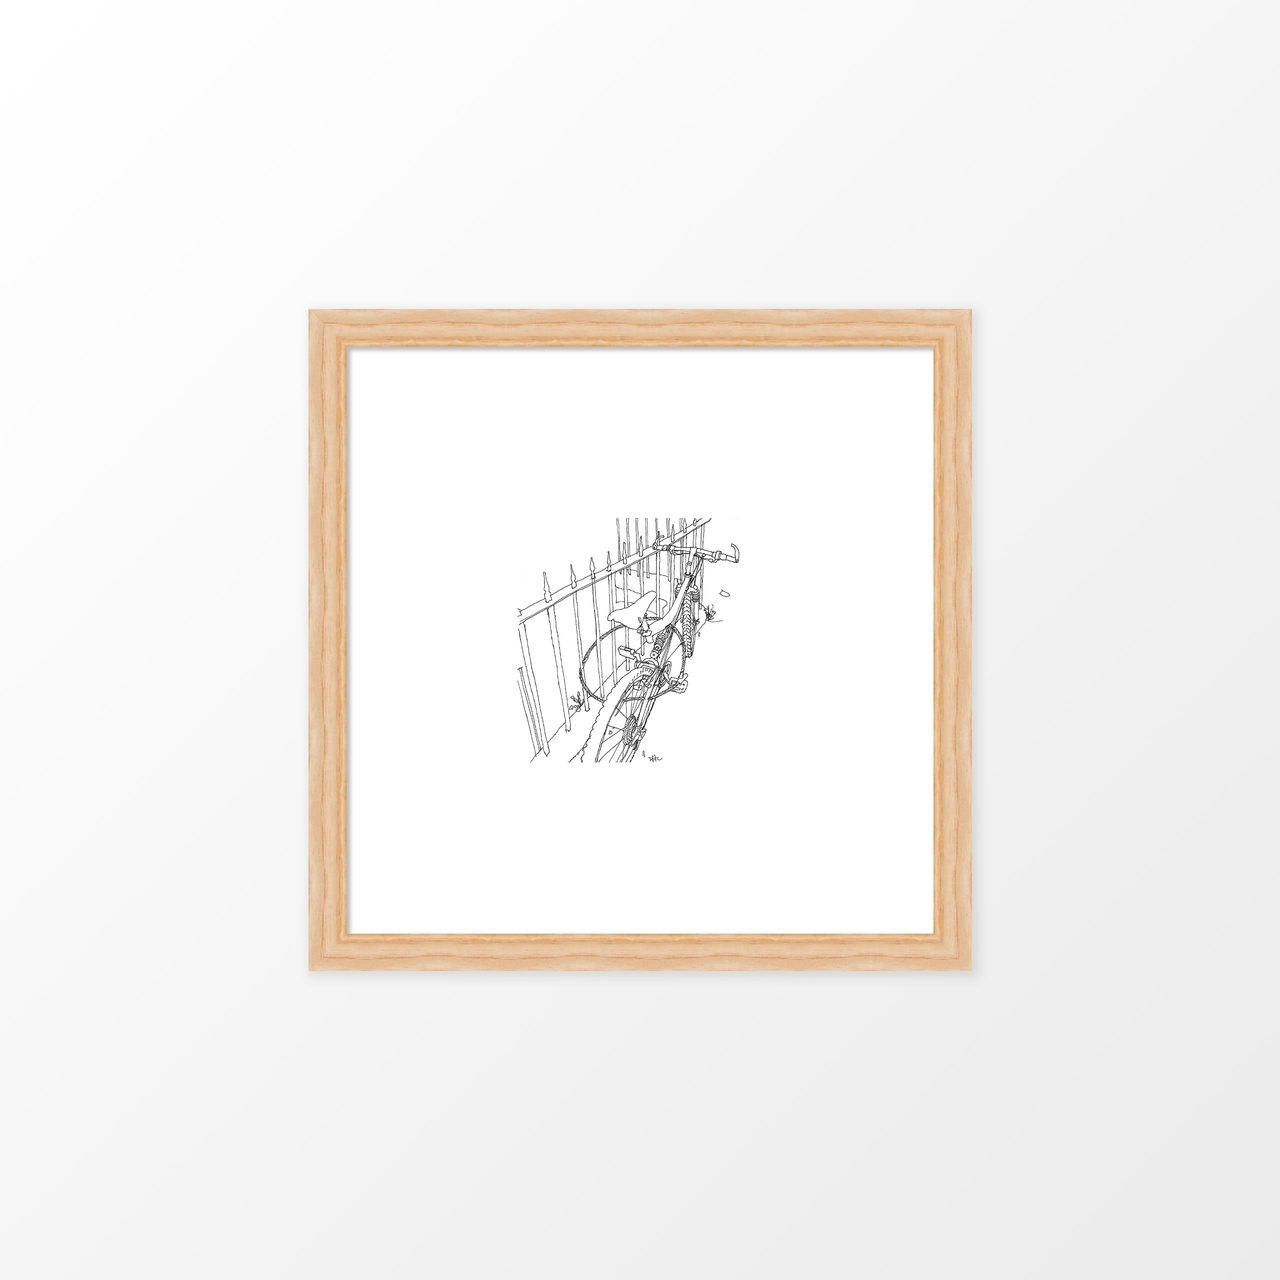 'By the Railings' Art Print (ink drawing by David Cobley) from The Printed Home